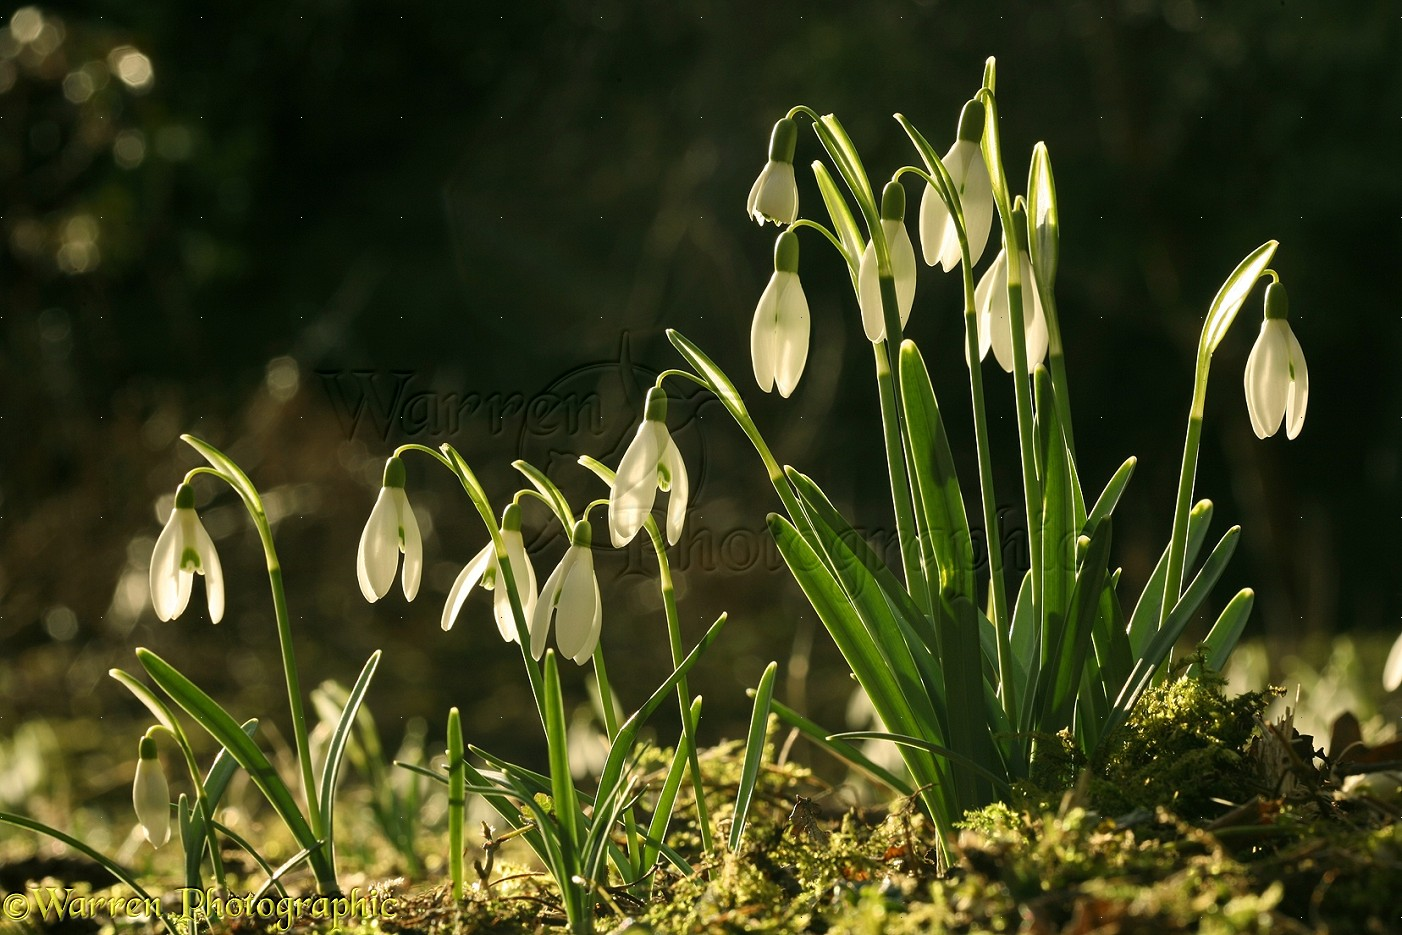 Wp11884 snowdrops galanthus nivalis in early spring sunshine